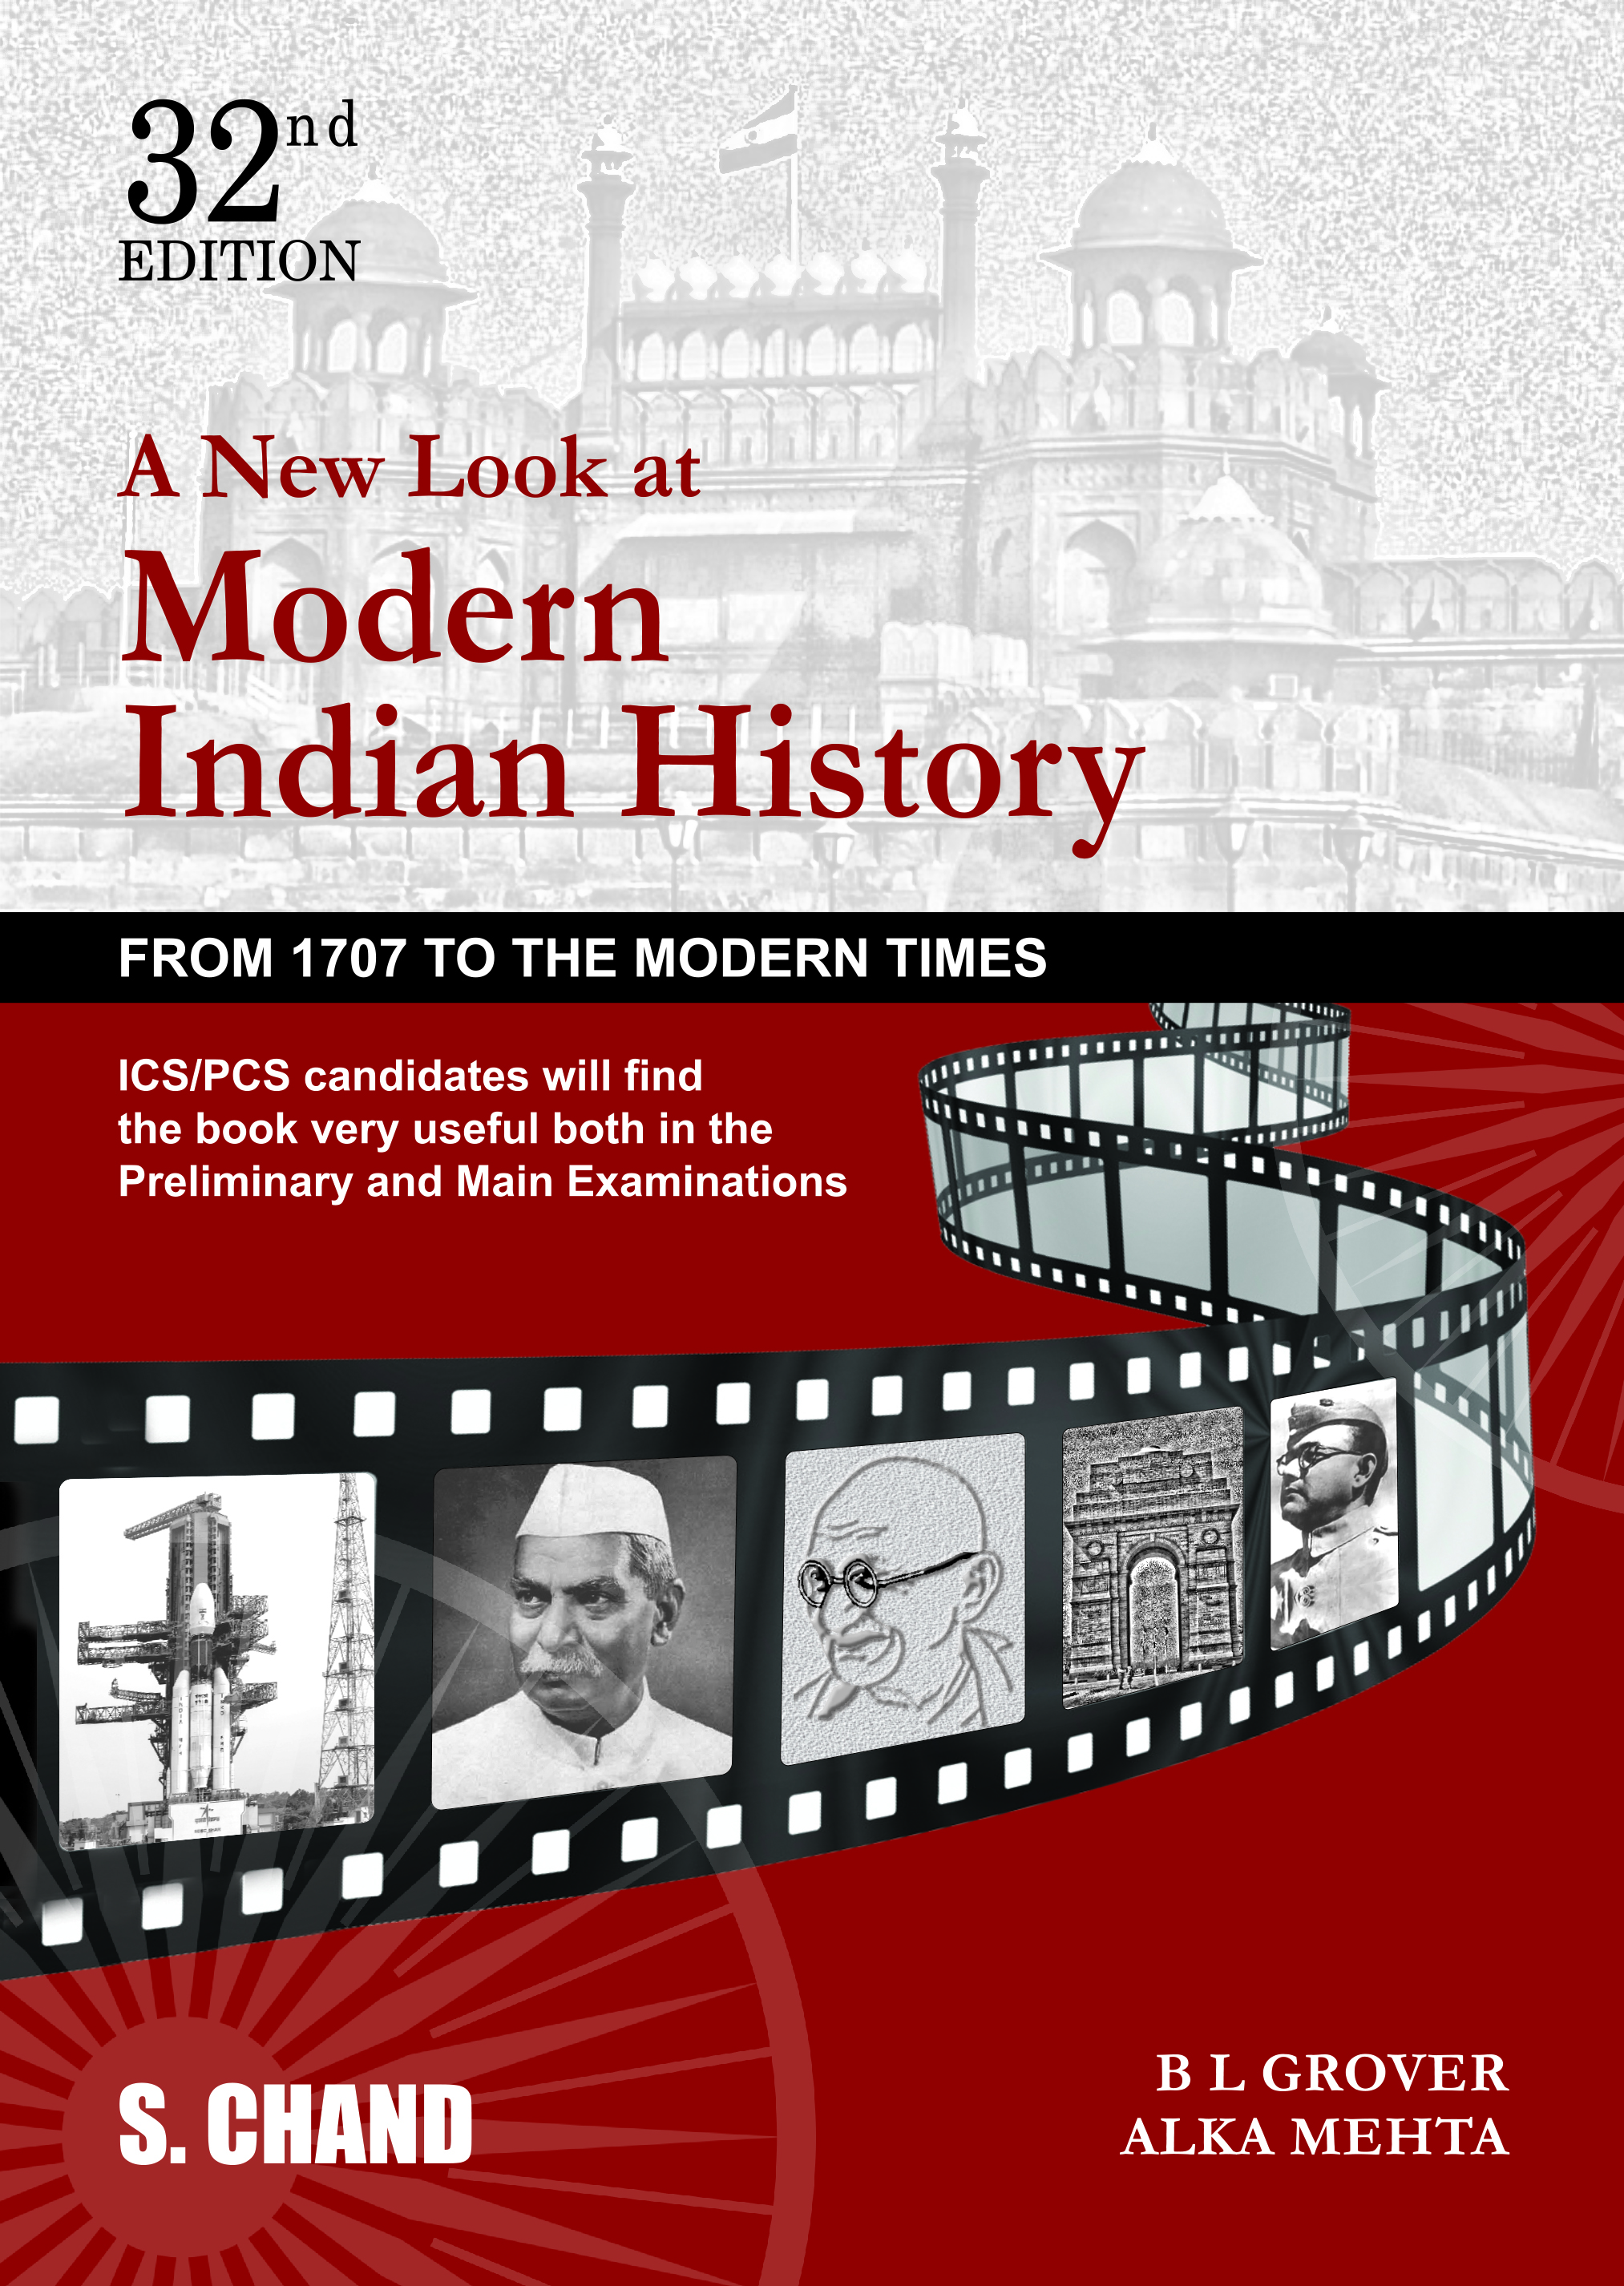 A New Look at Modern Indian History by B L Grover & Alka Mehta